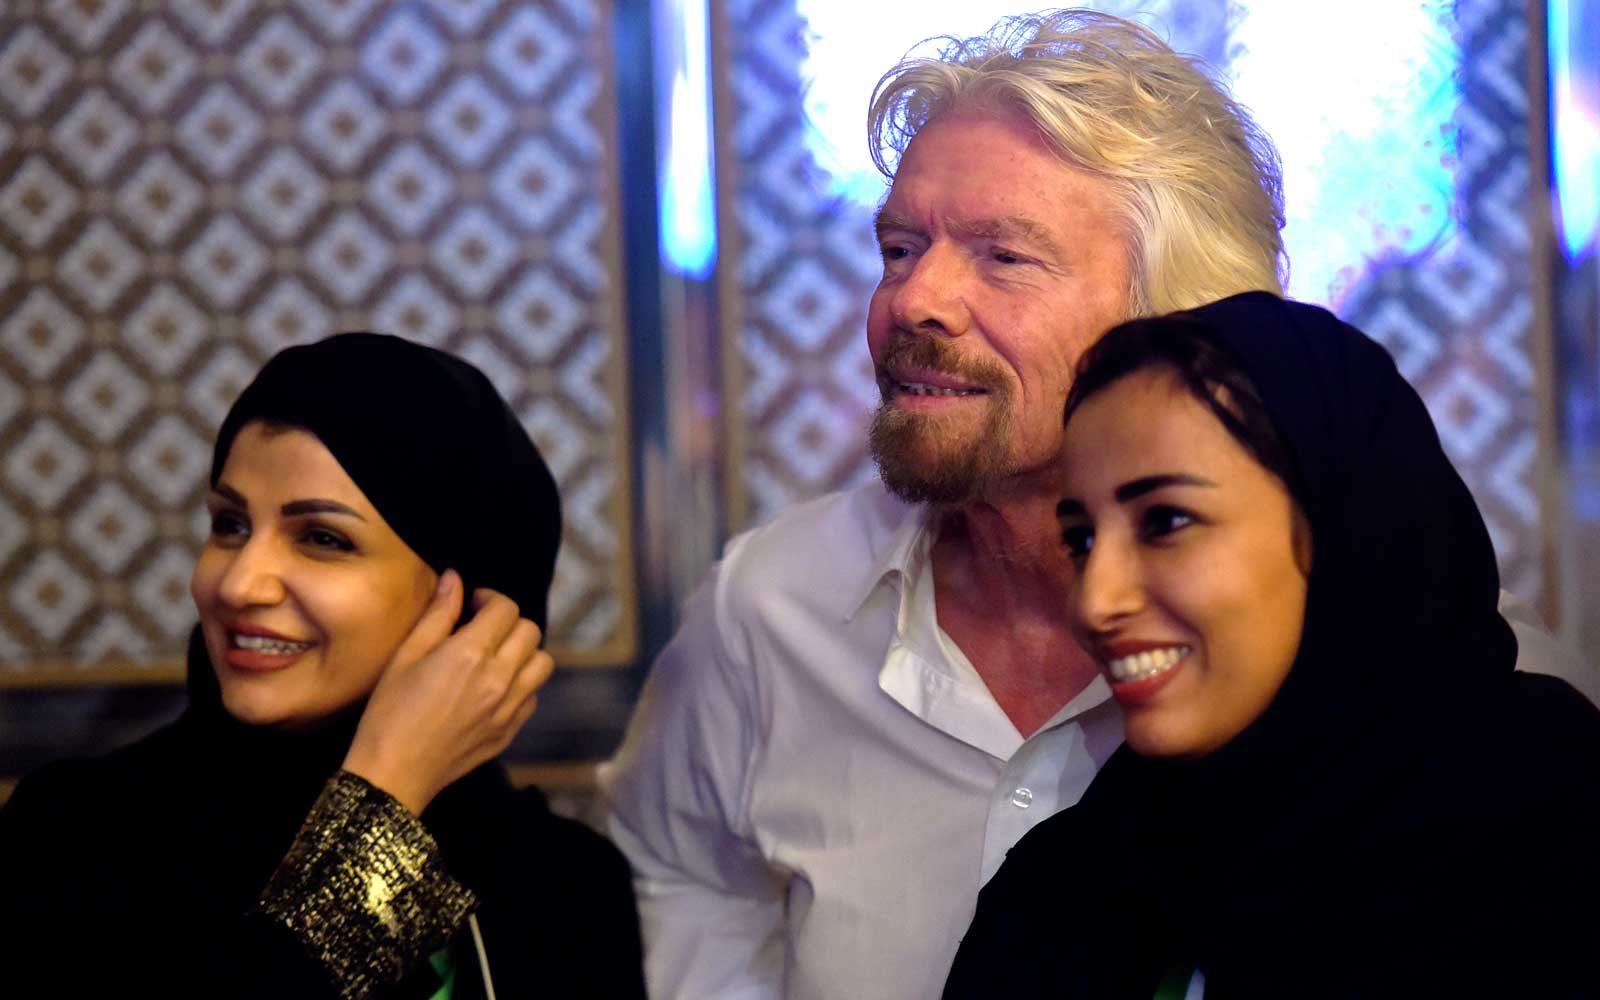 Richard Branson in Saudi Arabia